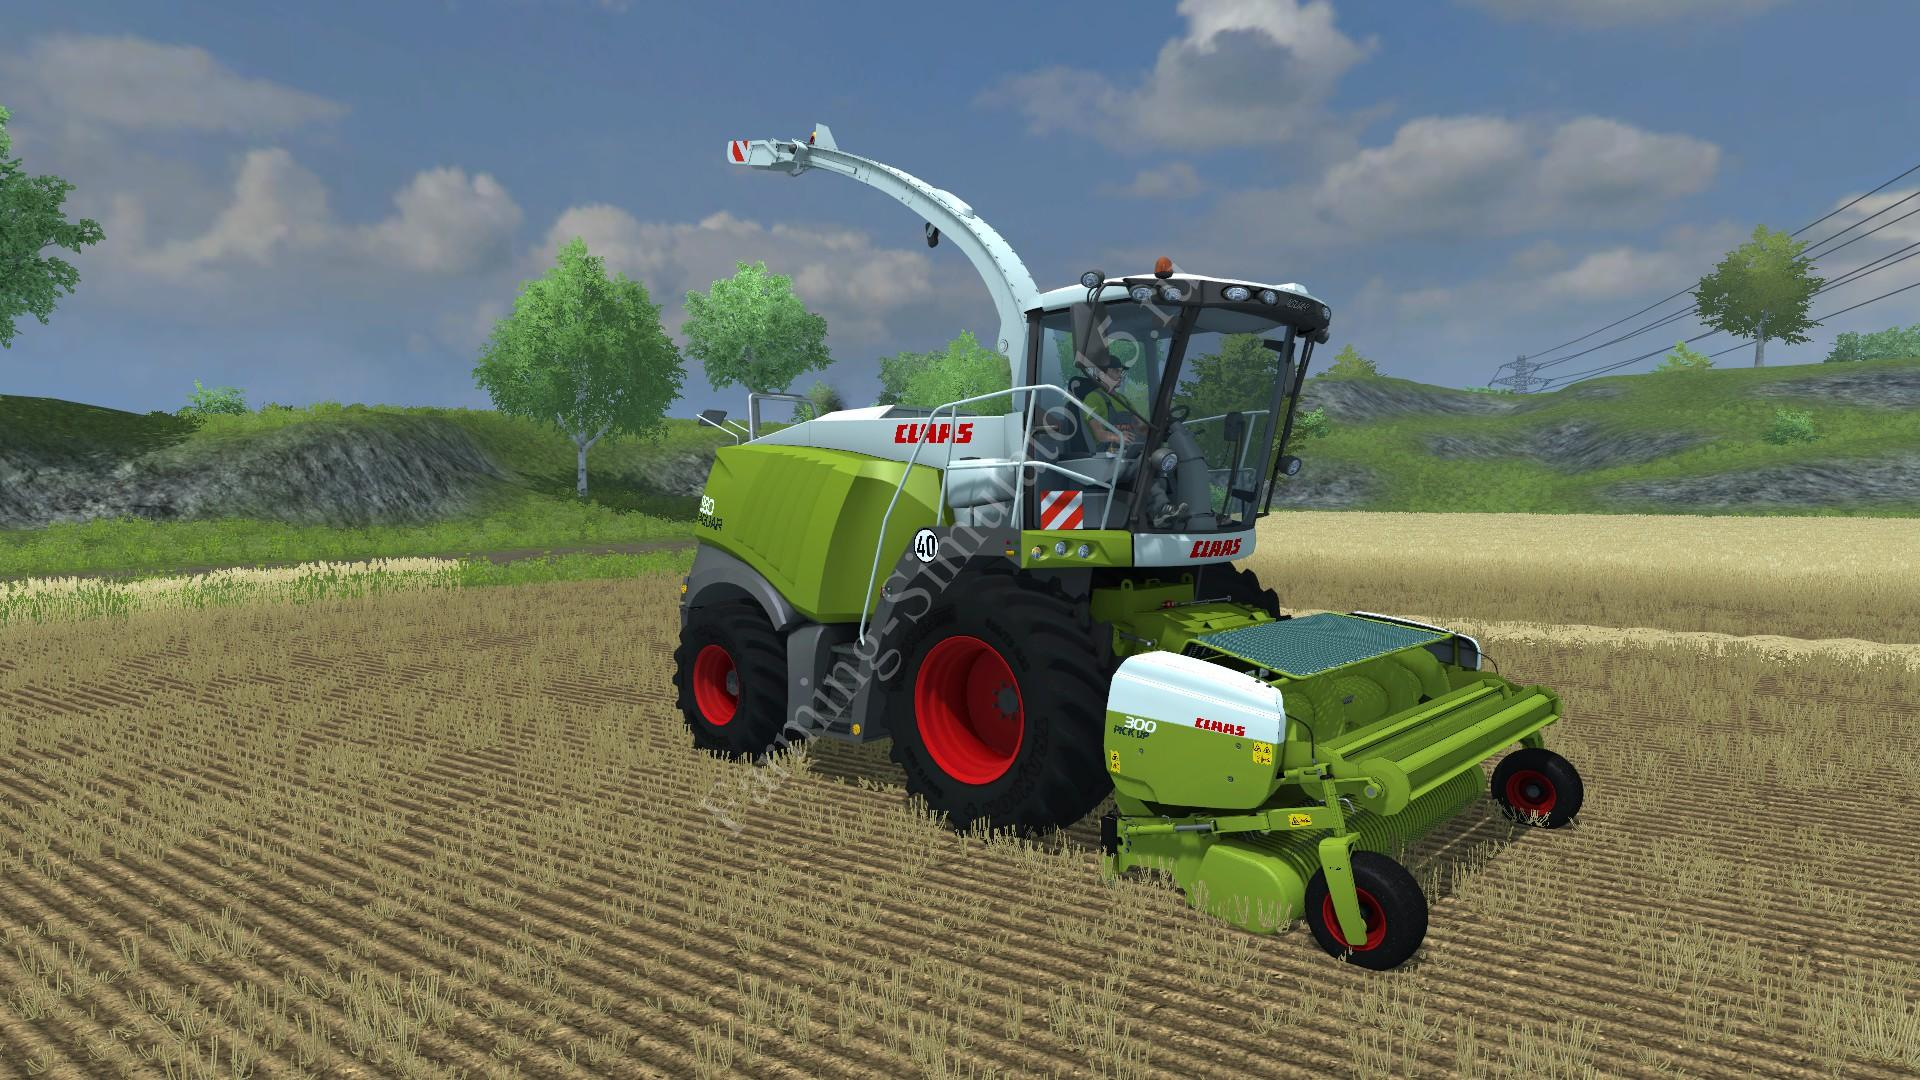 Мод подборщика Claas Pick UP 300 v 1.0 Farming Simulator 2013, Farming Simulator 13